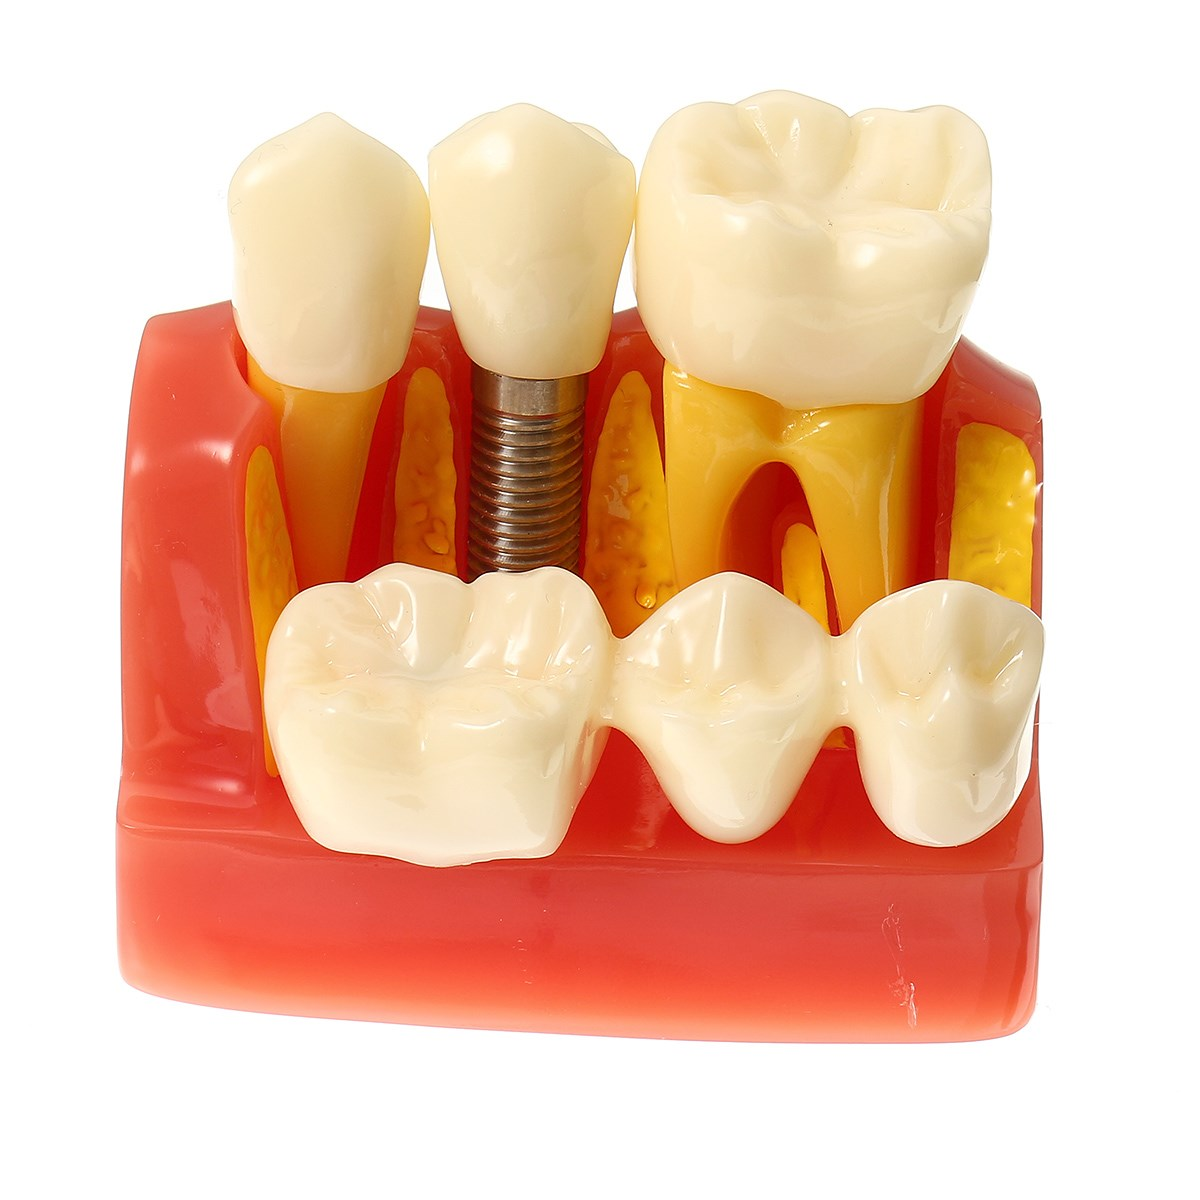 New 4 Times Dental Implant Disease Teeth Model With Restoration Bridge Crown For Medical Science Teaching Demonstration 2017 New soarday 1 piece 2 times dental pathological model implant bridge crown treatment oral teaching model